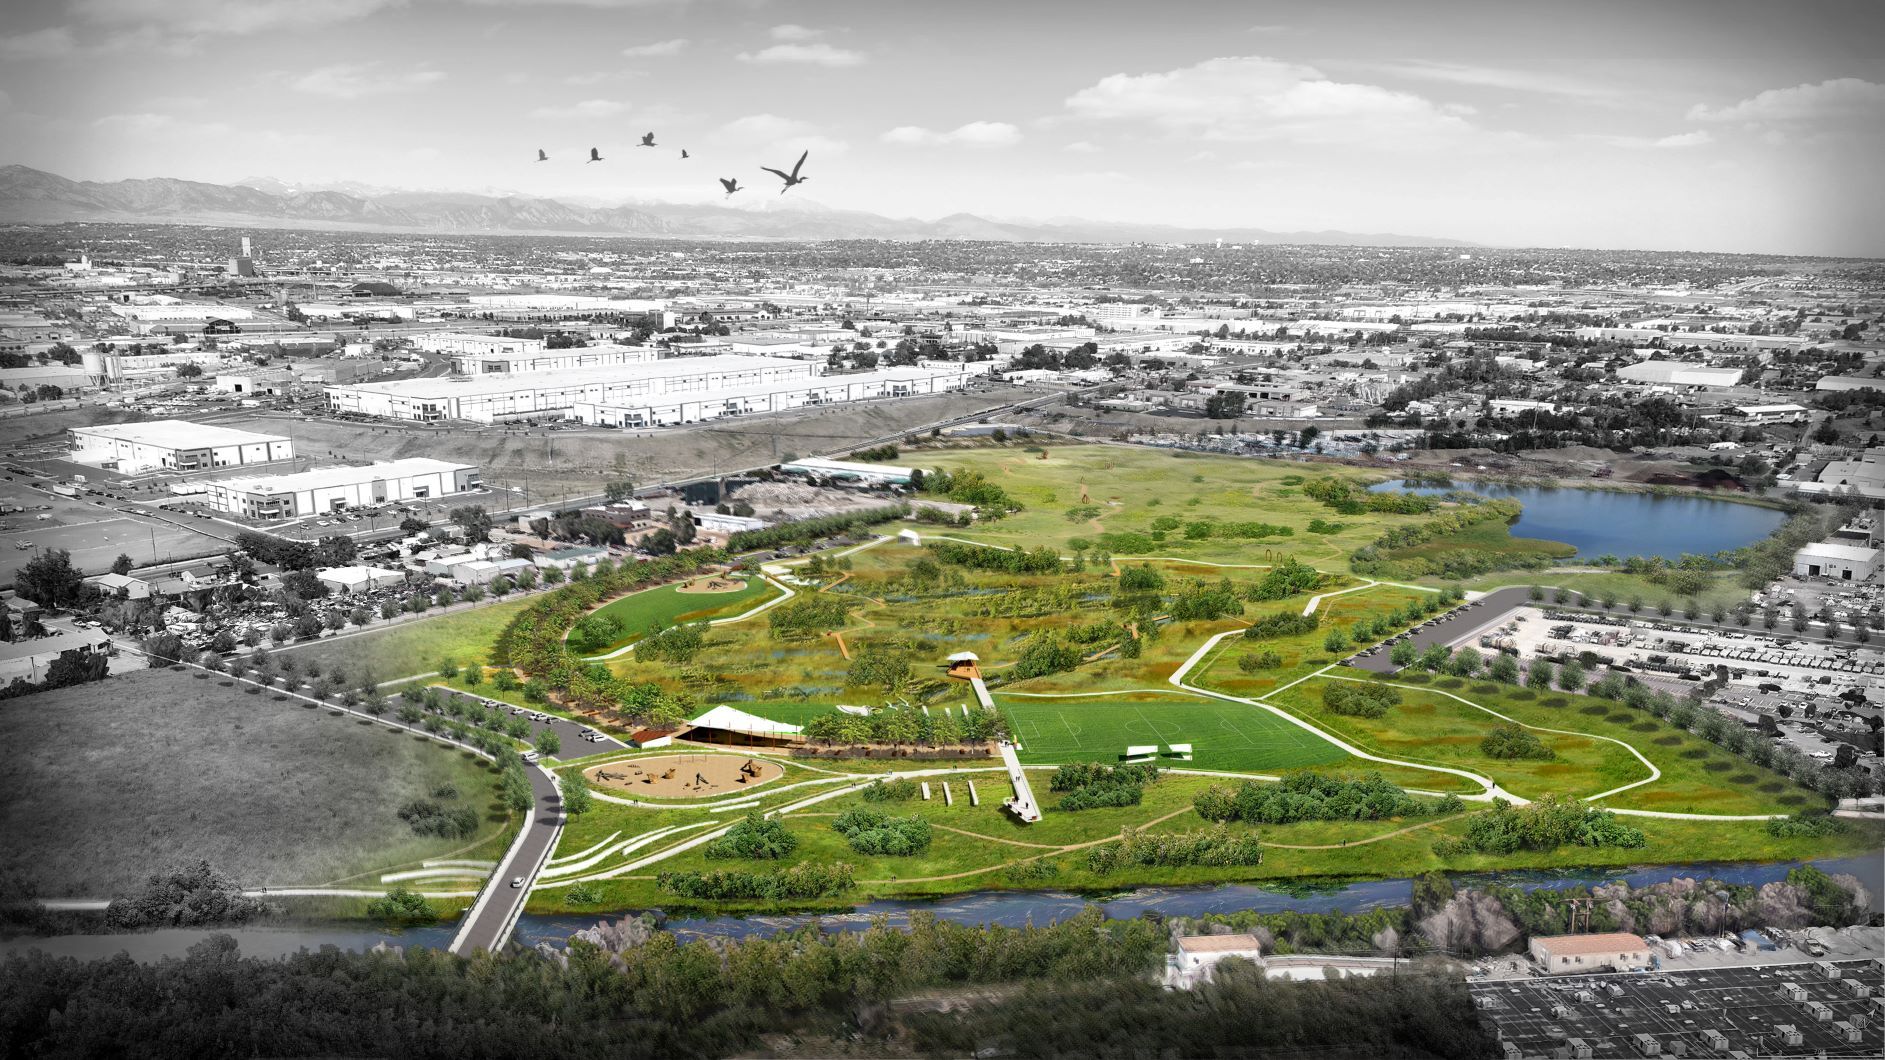 Aerial rendering of Heron Pond, Heller Open Space and Carpio-Sanguinette Park